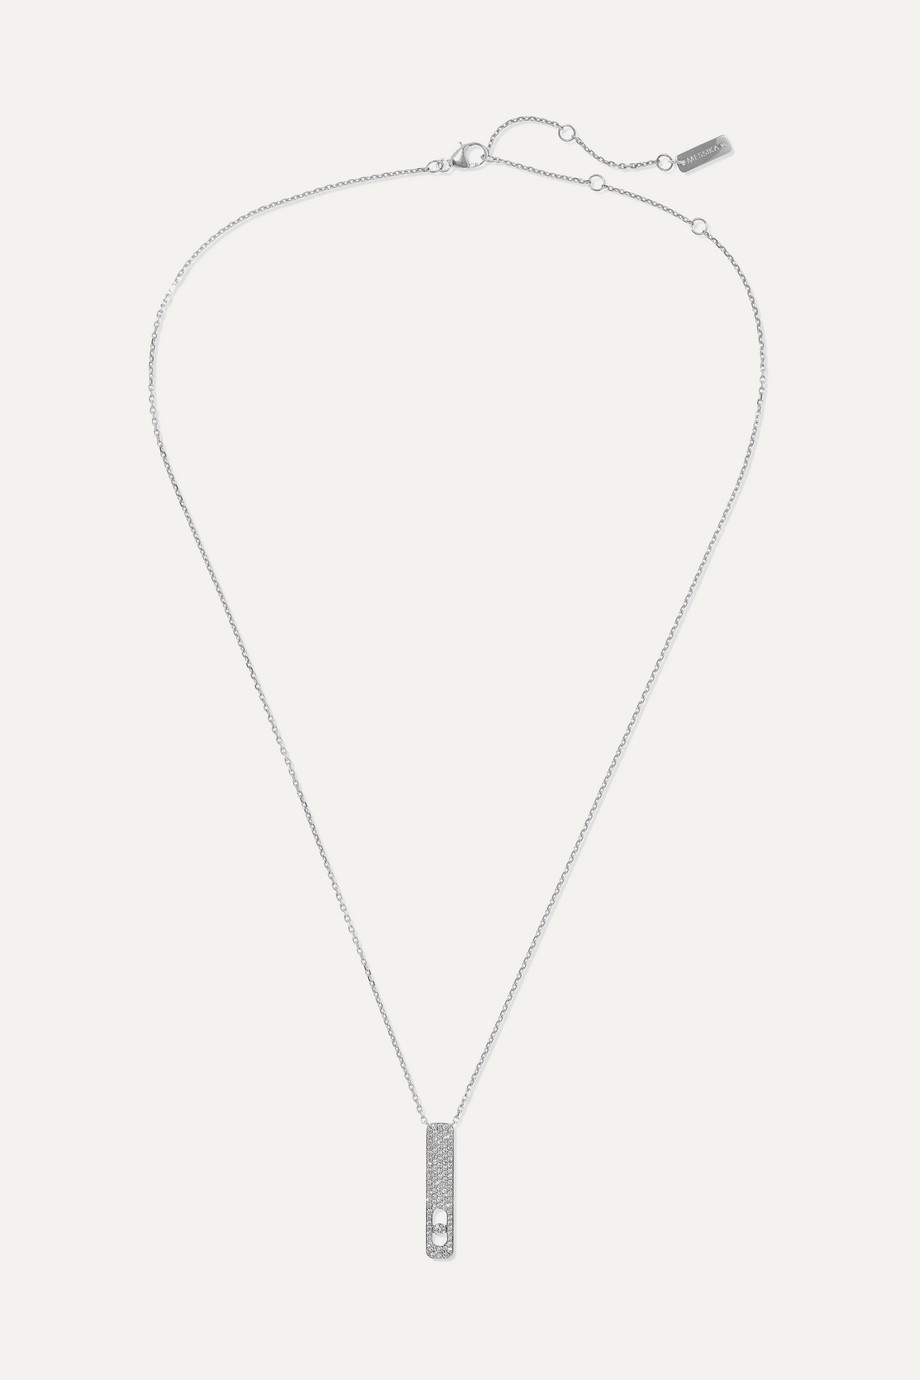 MESSIKA My First Diamond 18-karat white gold diamond necklace